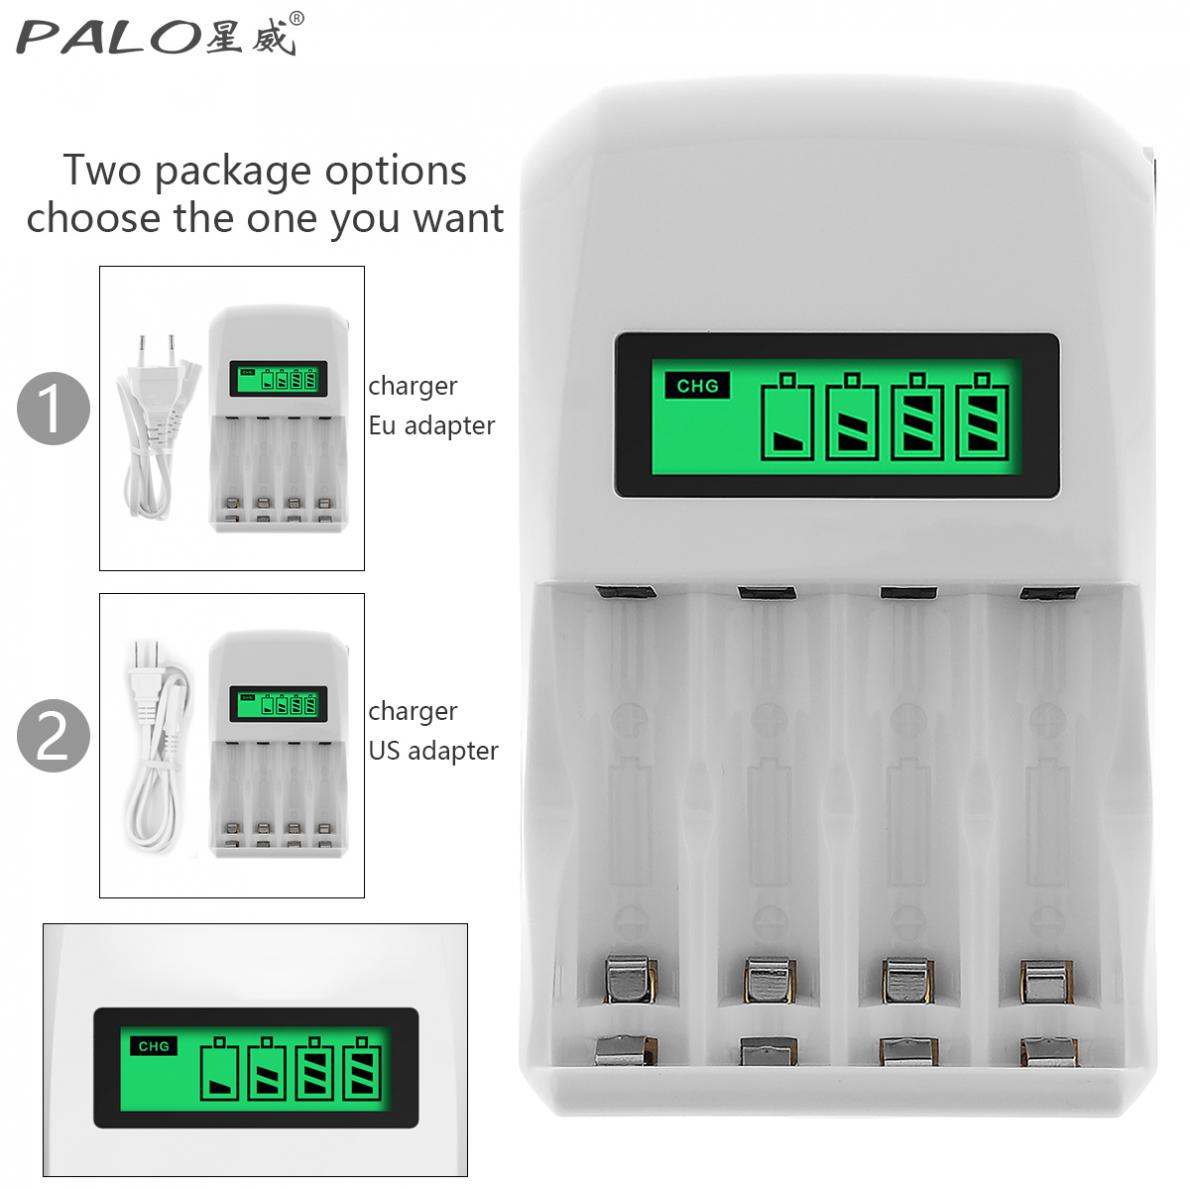 PALO Battery Charger 4 Slots LCD Display Intelligent Quick Battery Charger for AA / AAA / NiCd NiMh Rechargeable Batteries